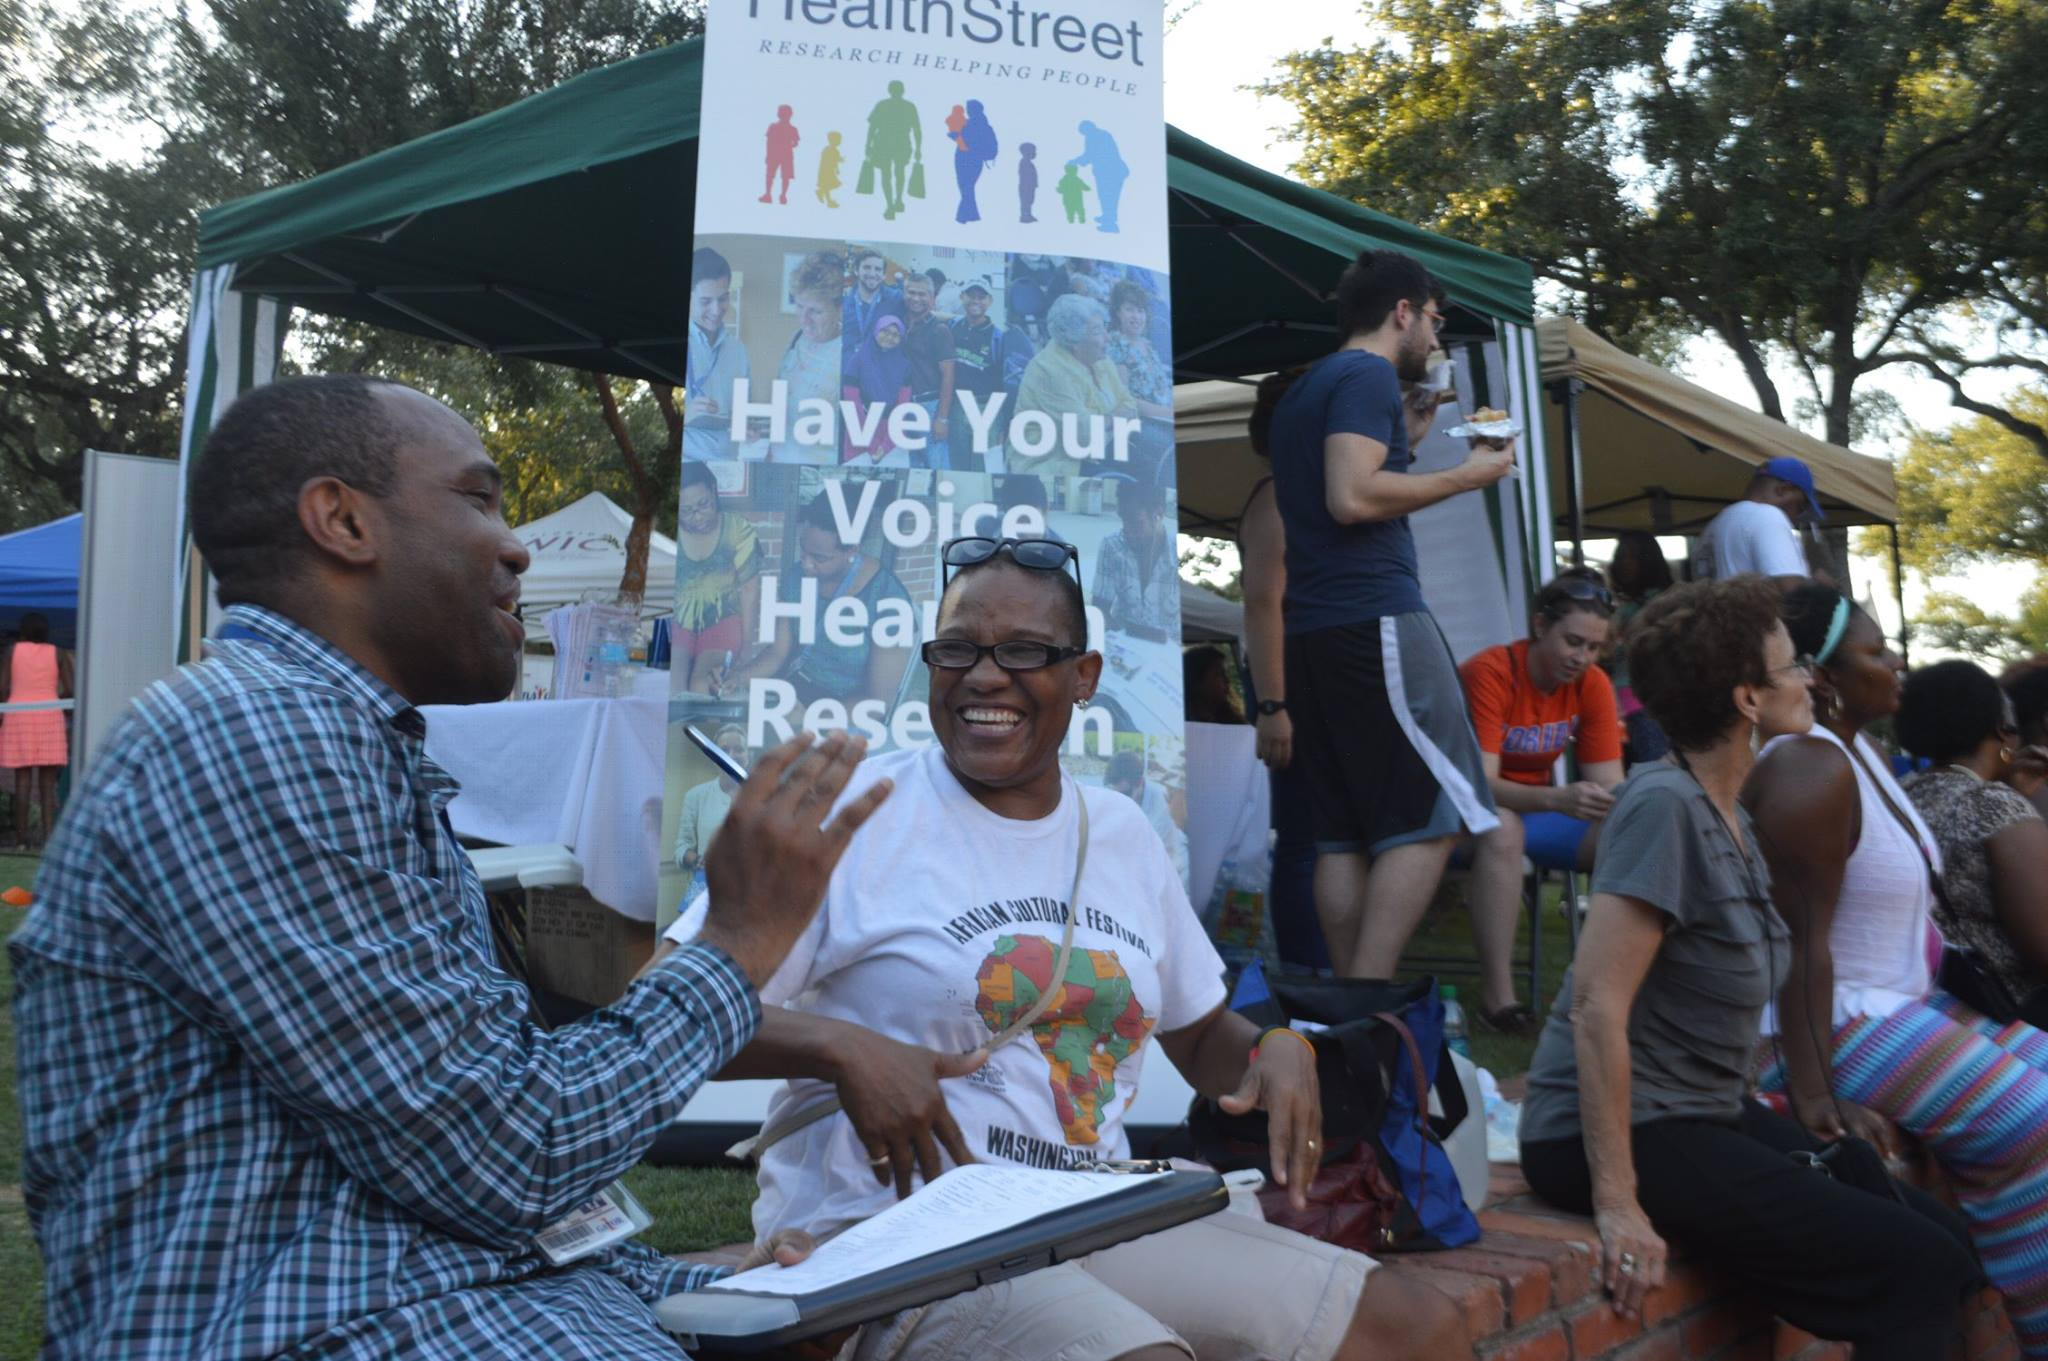 HealthStreet Outreach